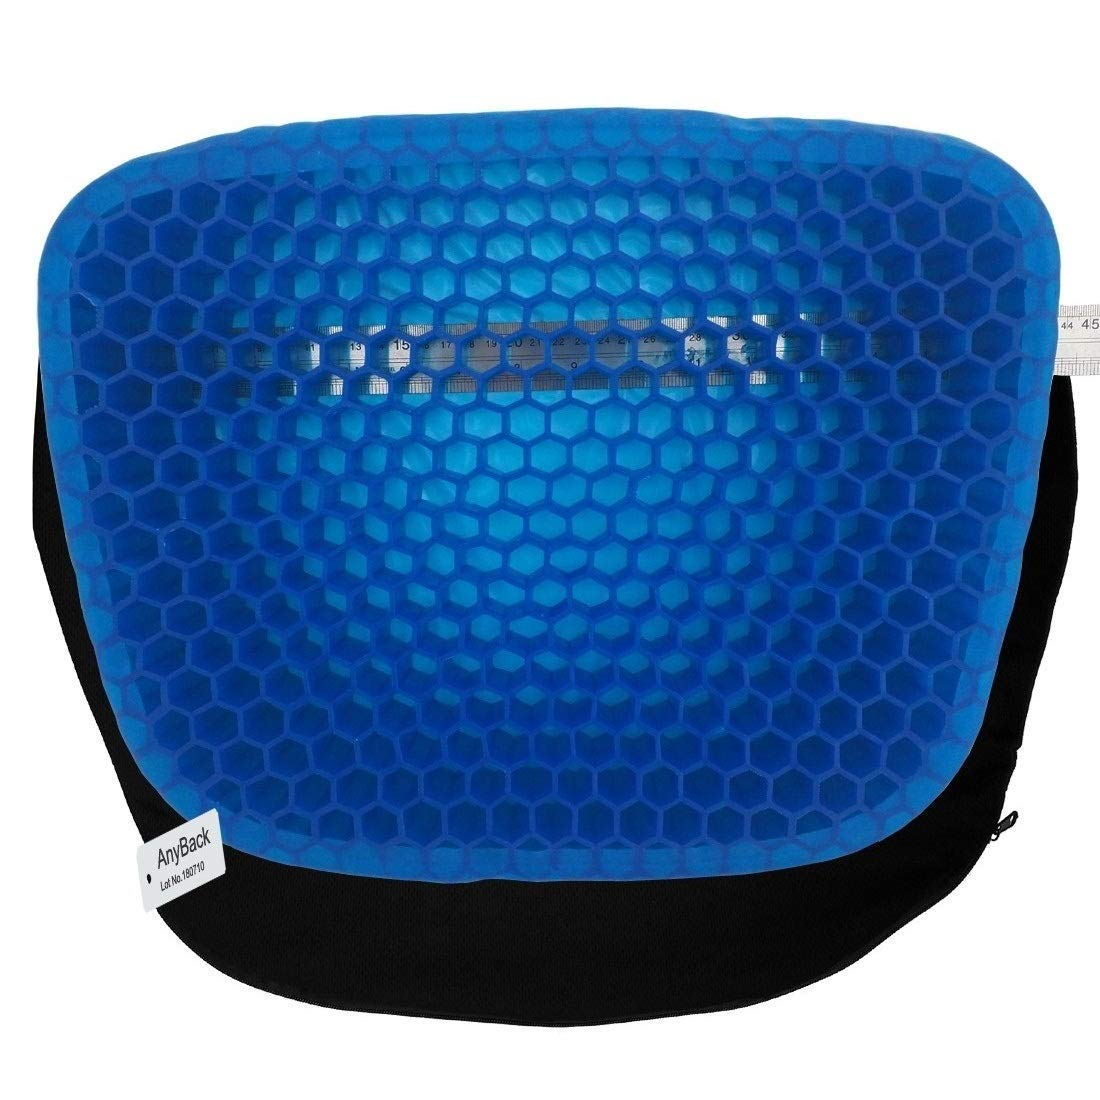 AnyBack Sitter Chair Cushion As Seen TV, Seat Cushion for Office Wheelchair Car, Gel Support Sponge Massager Patio Seating Chair Cushions for Pressure Relief with 1 Non Clip Zipper Cover